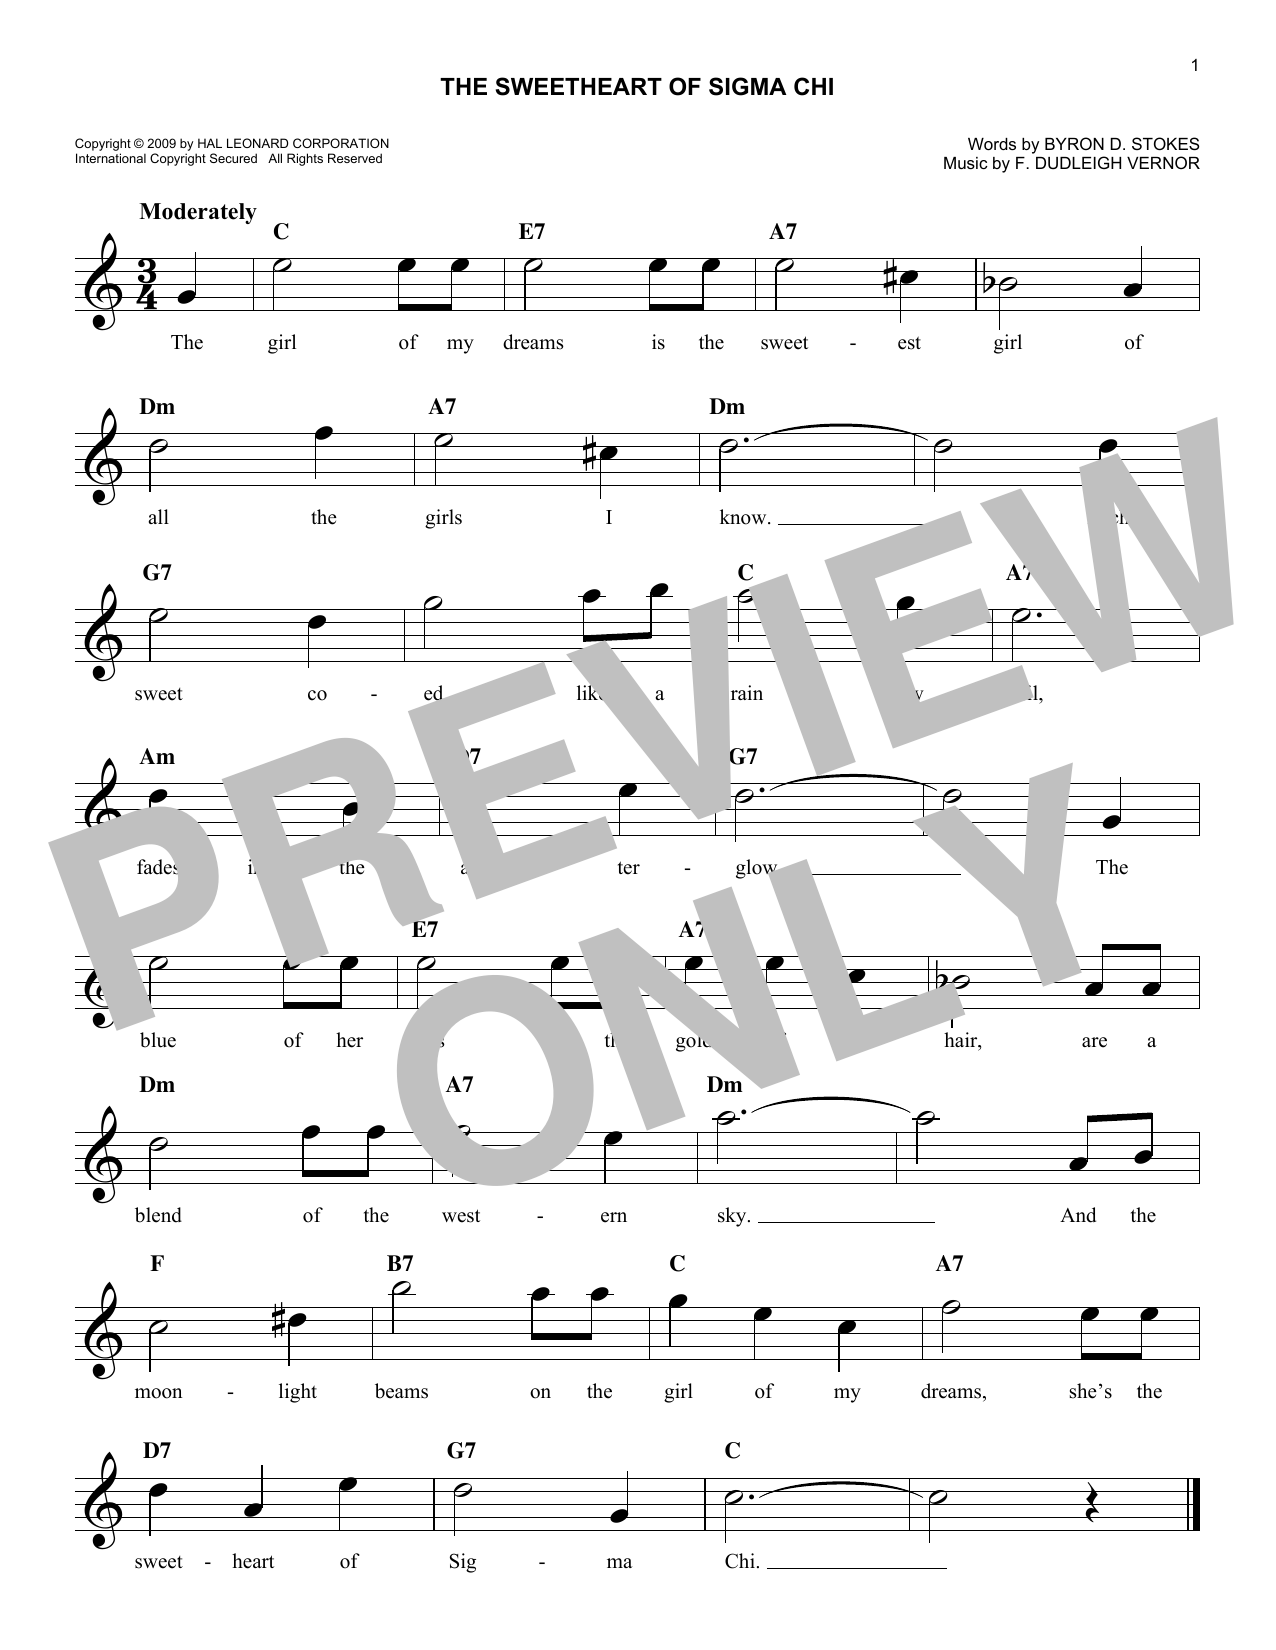 F. Dudleigh Vernor The Sweetheart Of Sigma Chi sheet music notes and chords. Download Printable PDF.